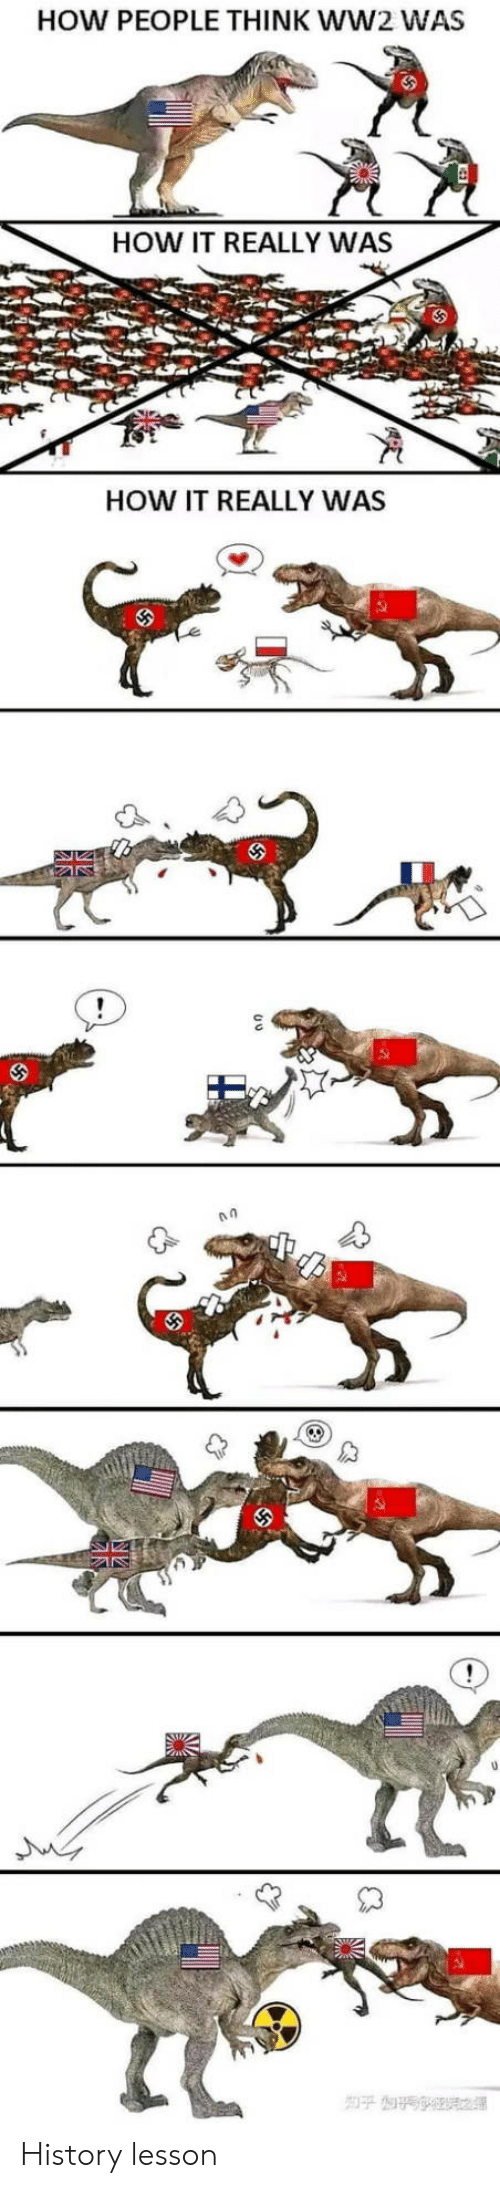 ww2: HOW PEOPLE THINK WW2 WAS  HOW IT REALLY WAS  HOW IT REALLY WAS  NZ History lesson